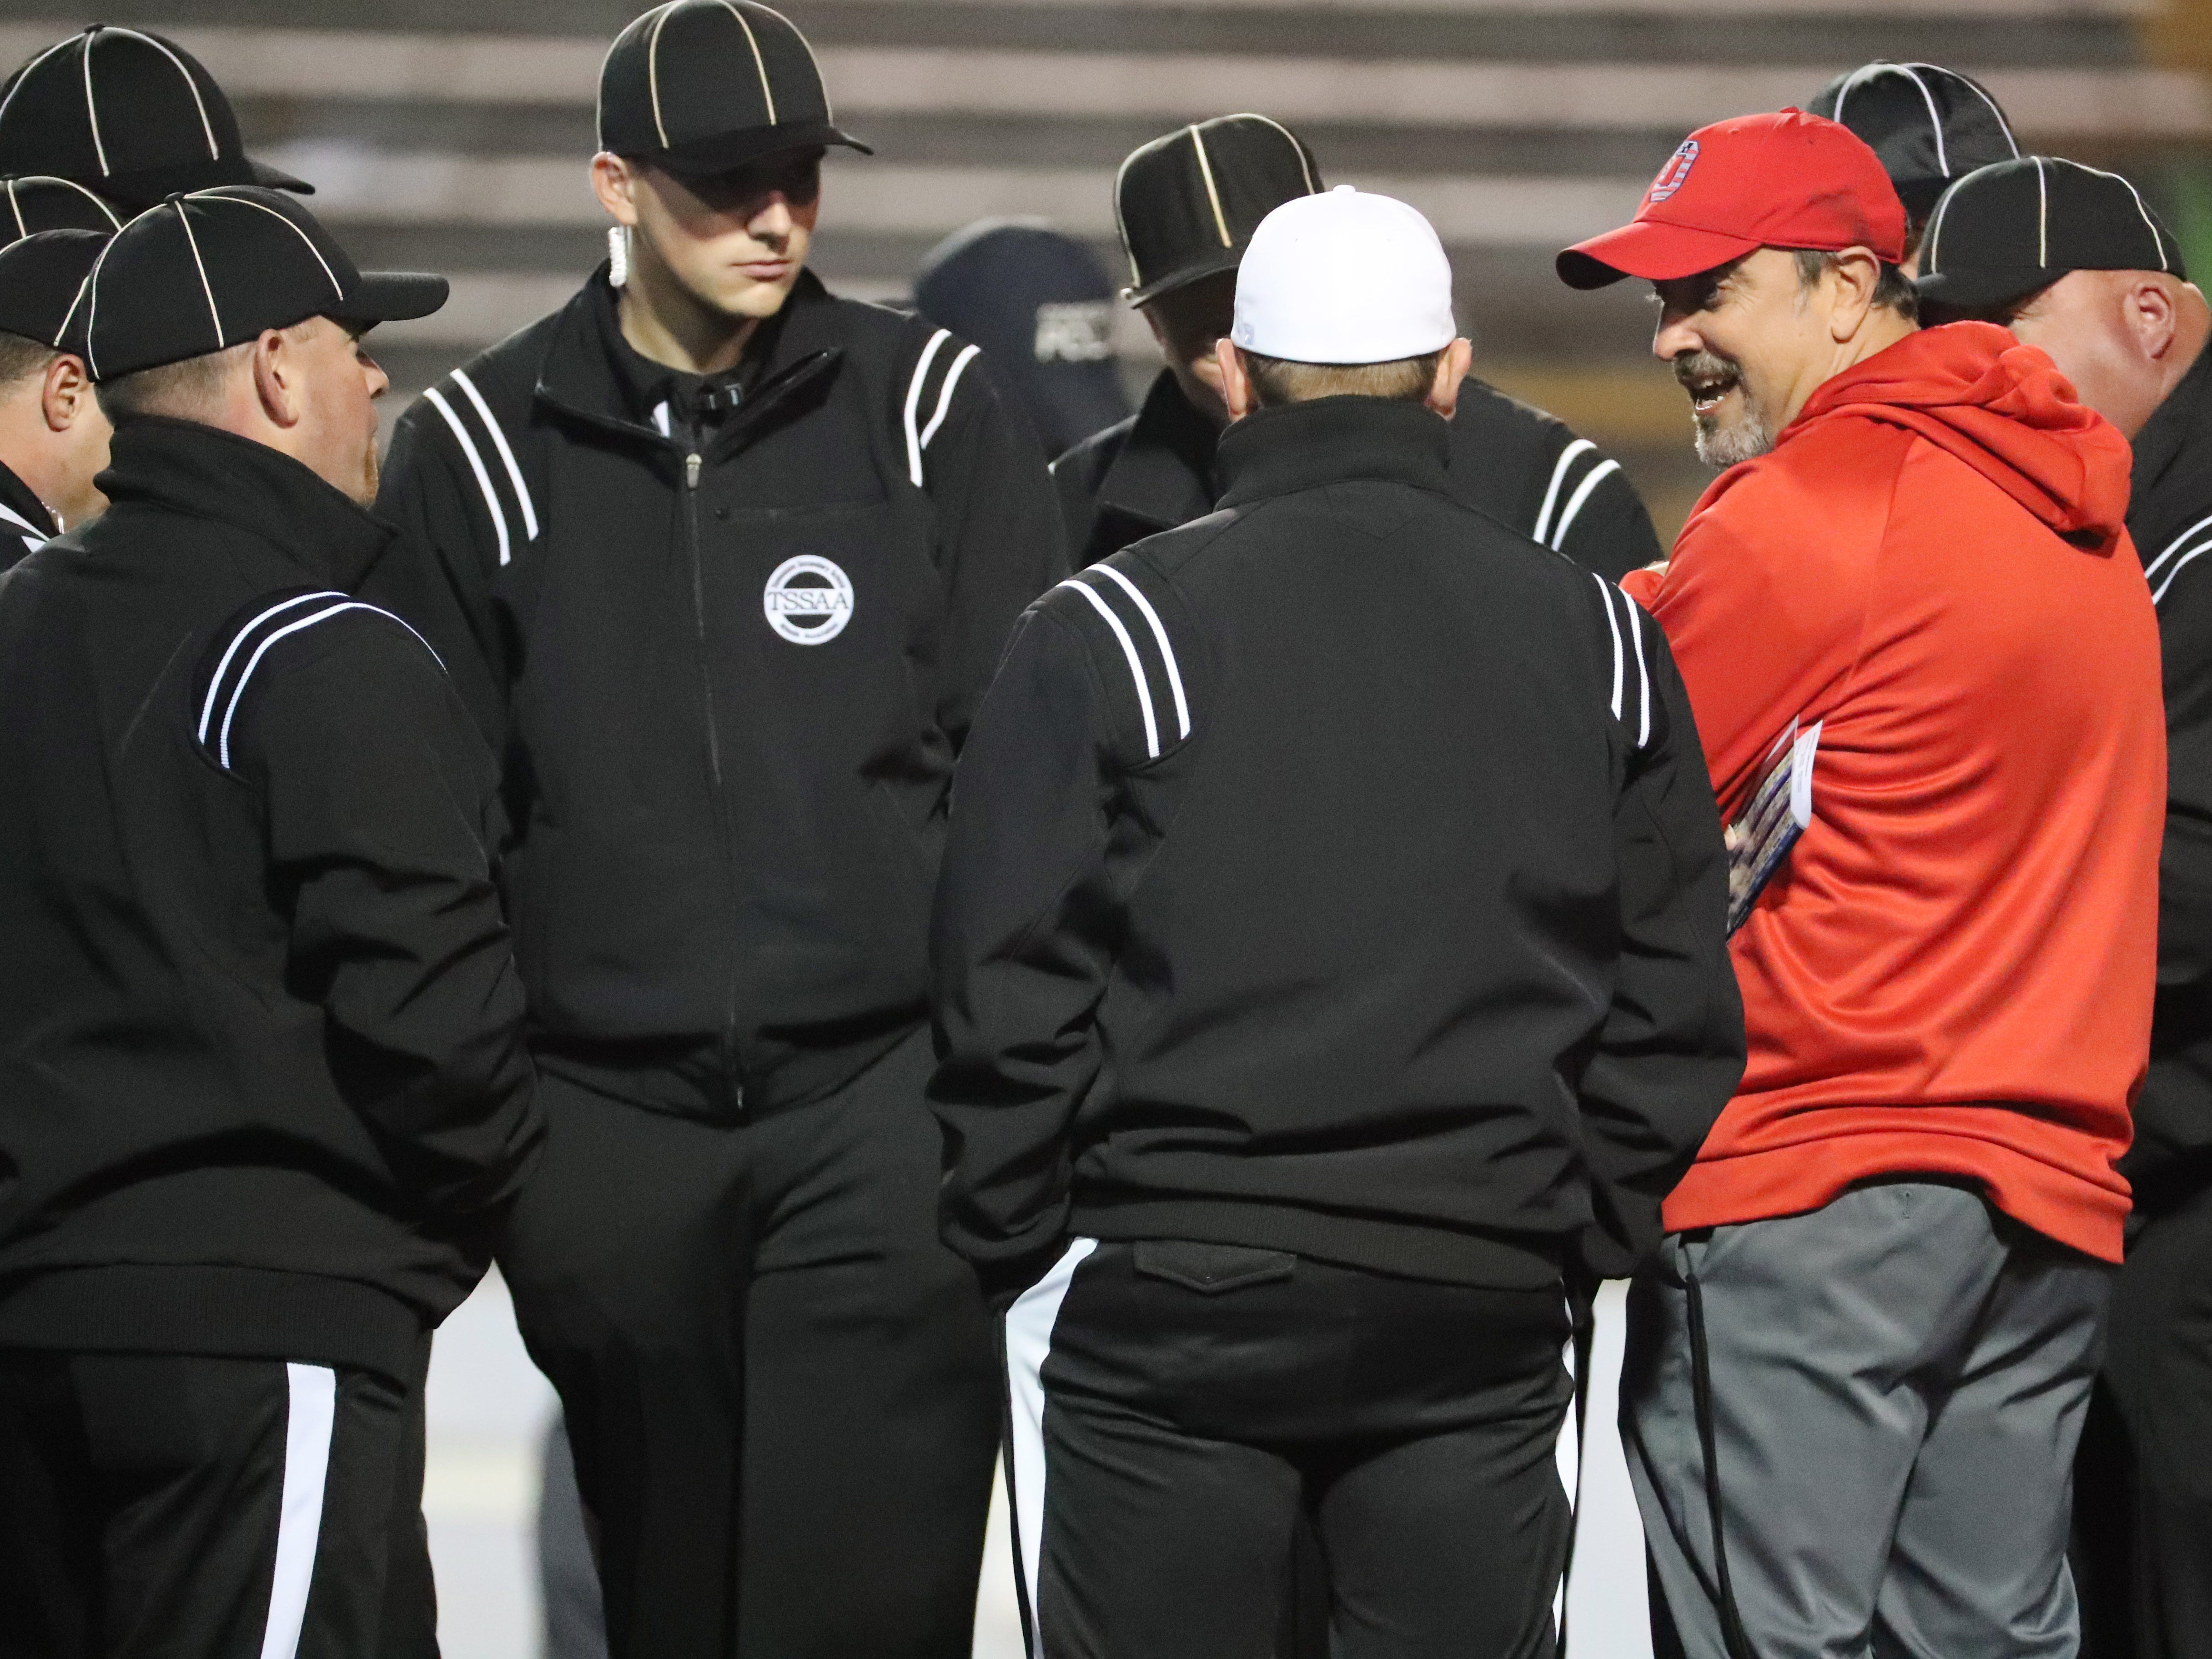 Oakland Head Coach Kevin Creasy chats with officials before the start of the Class 6A BlueCross Bowl state championship at Tennessee Tech's Tucker Stadium in Cookeville, Tenn., on Thursday, Nov. 29, 2018.